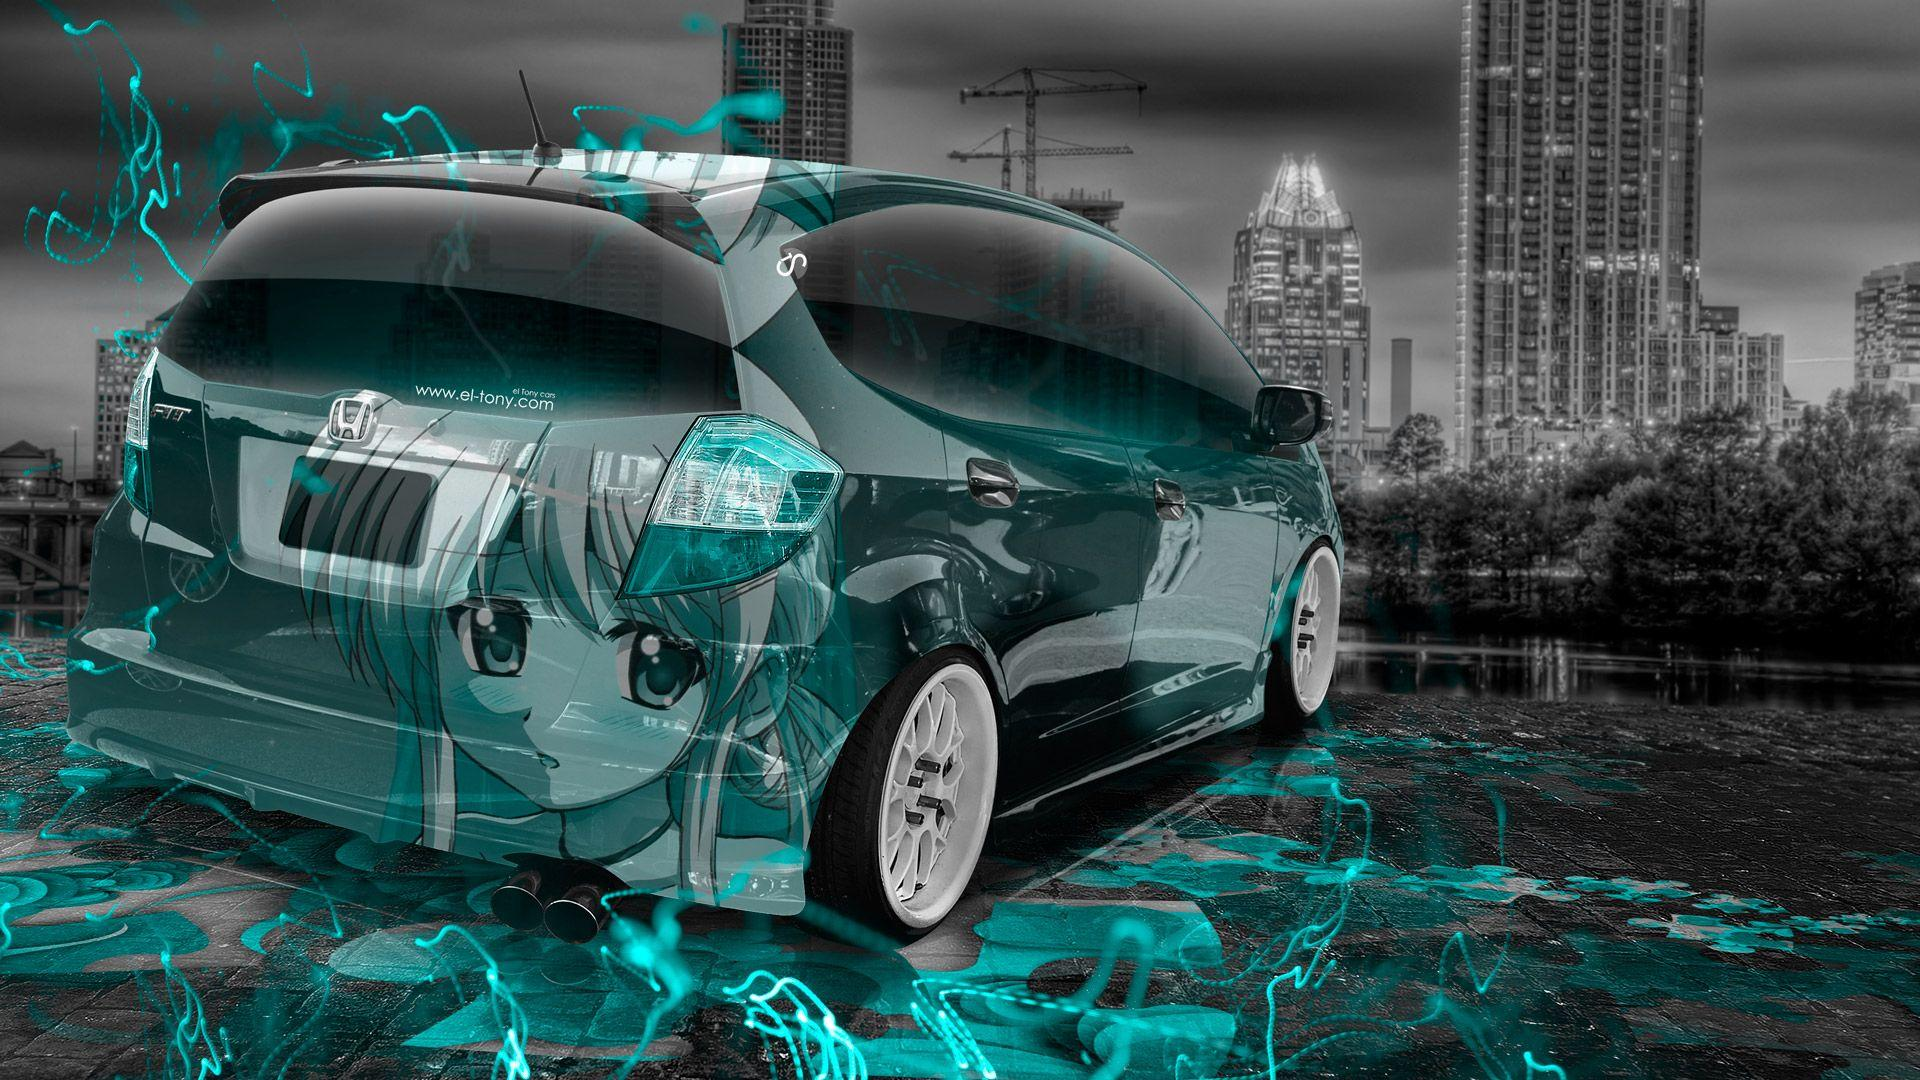 Honda Fit JDM Anime Girl Aerography City Car 2015